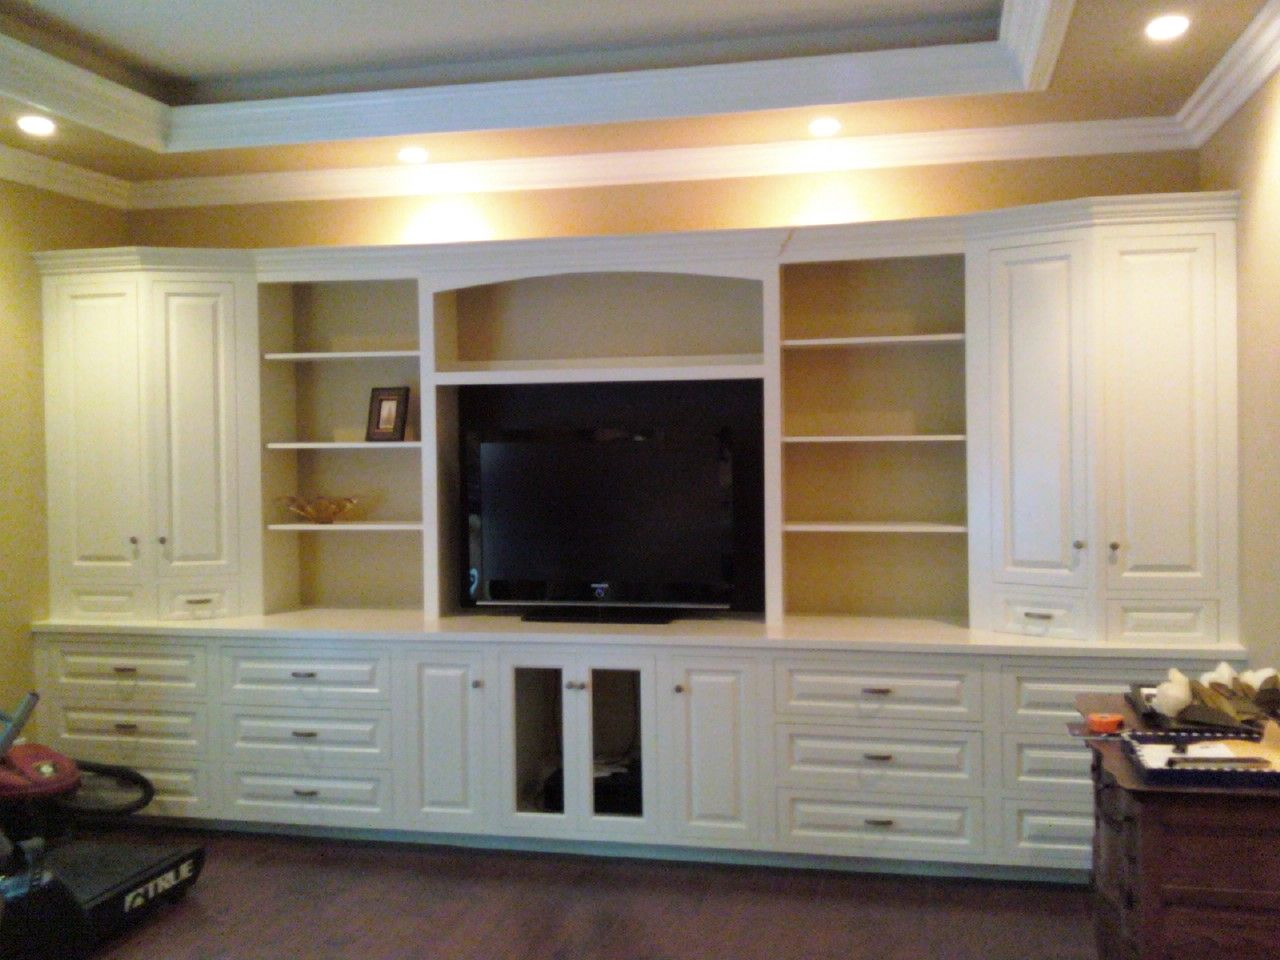 Living Room Wall Units With Storage Wall Units Design Ideas Downstairs Storage